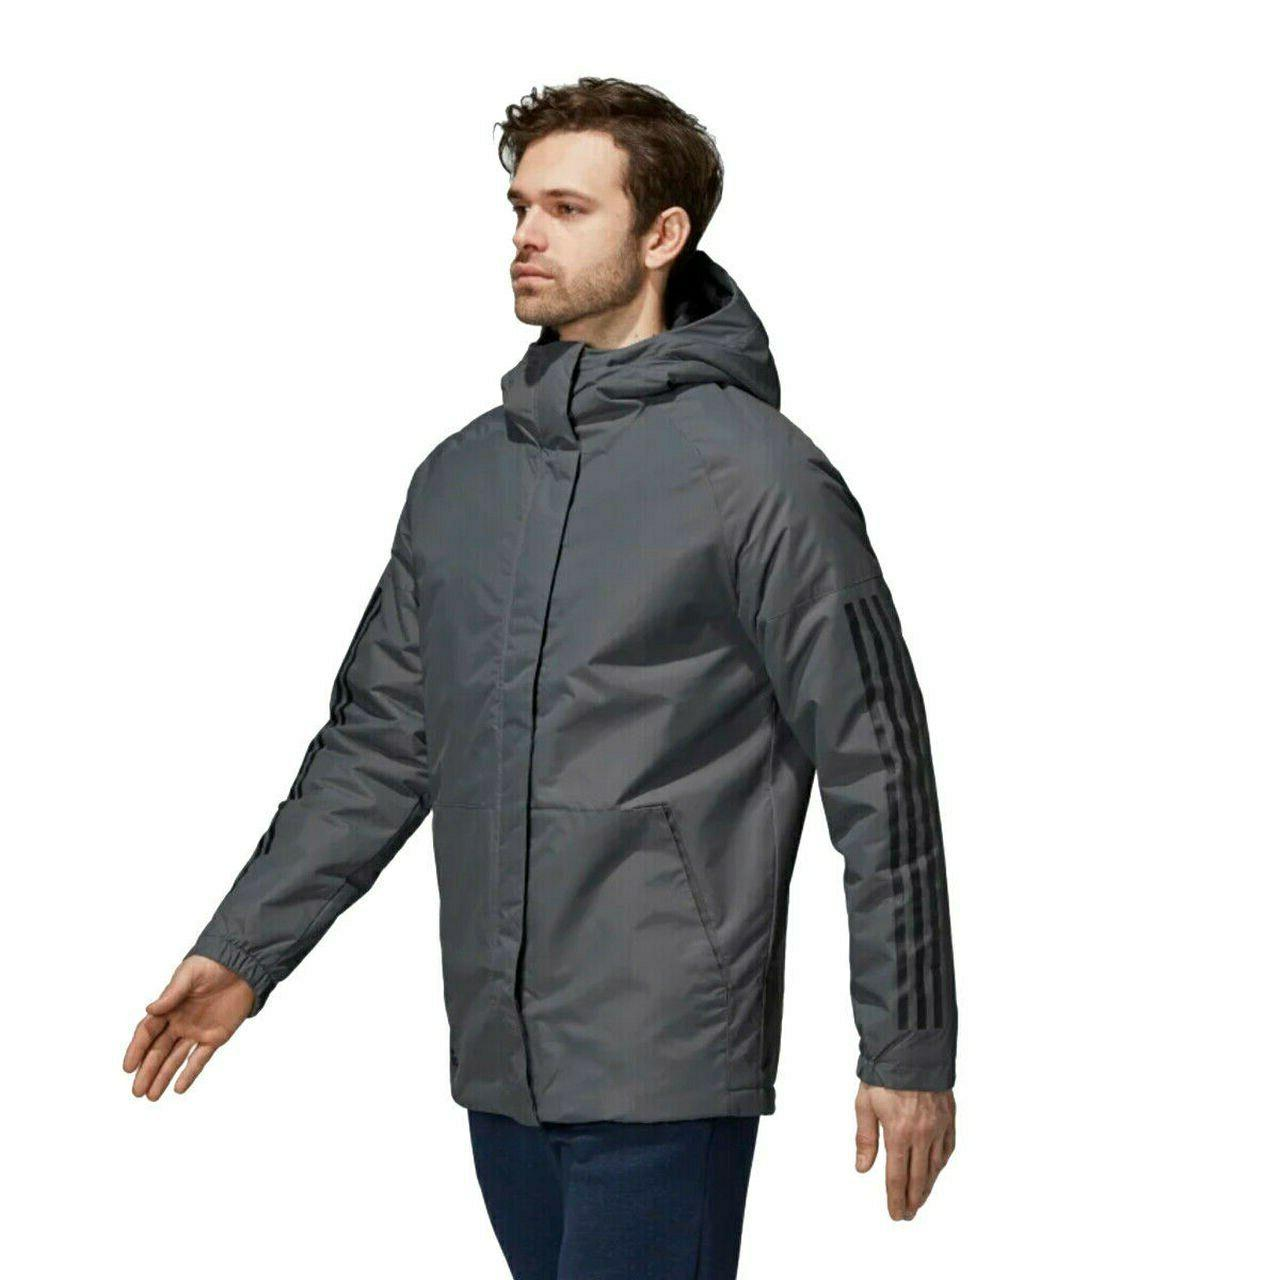 Men's 3 Hooded Insulated Winter Jacket